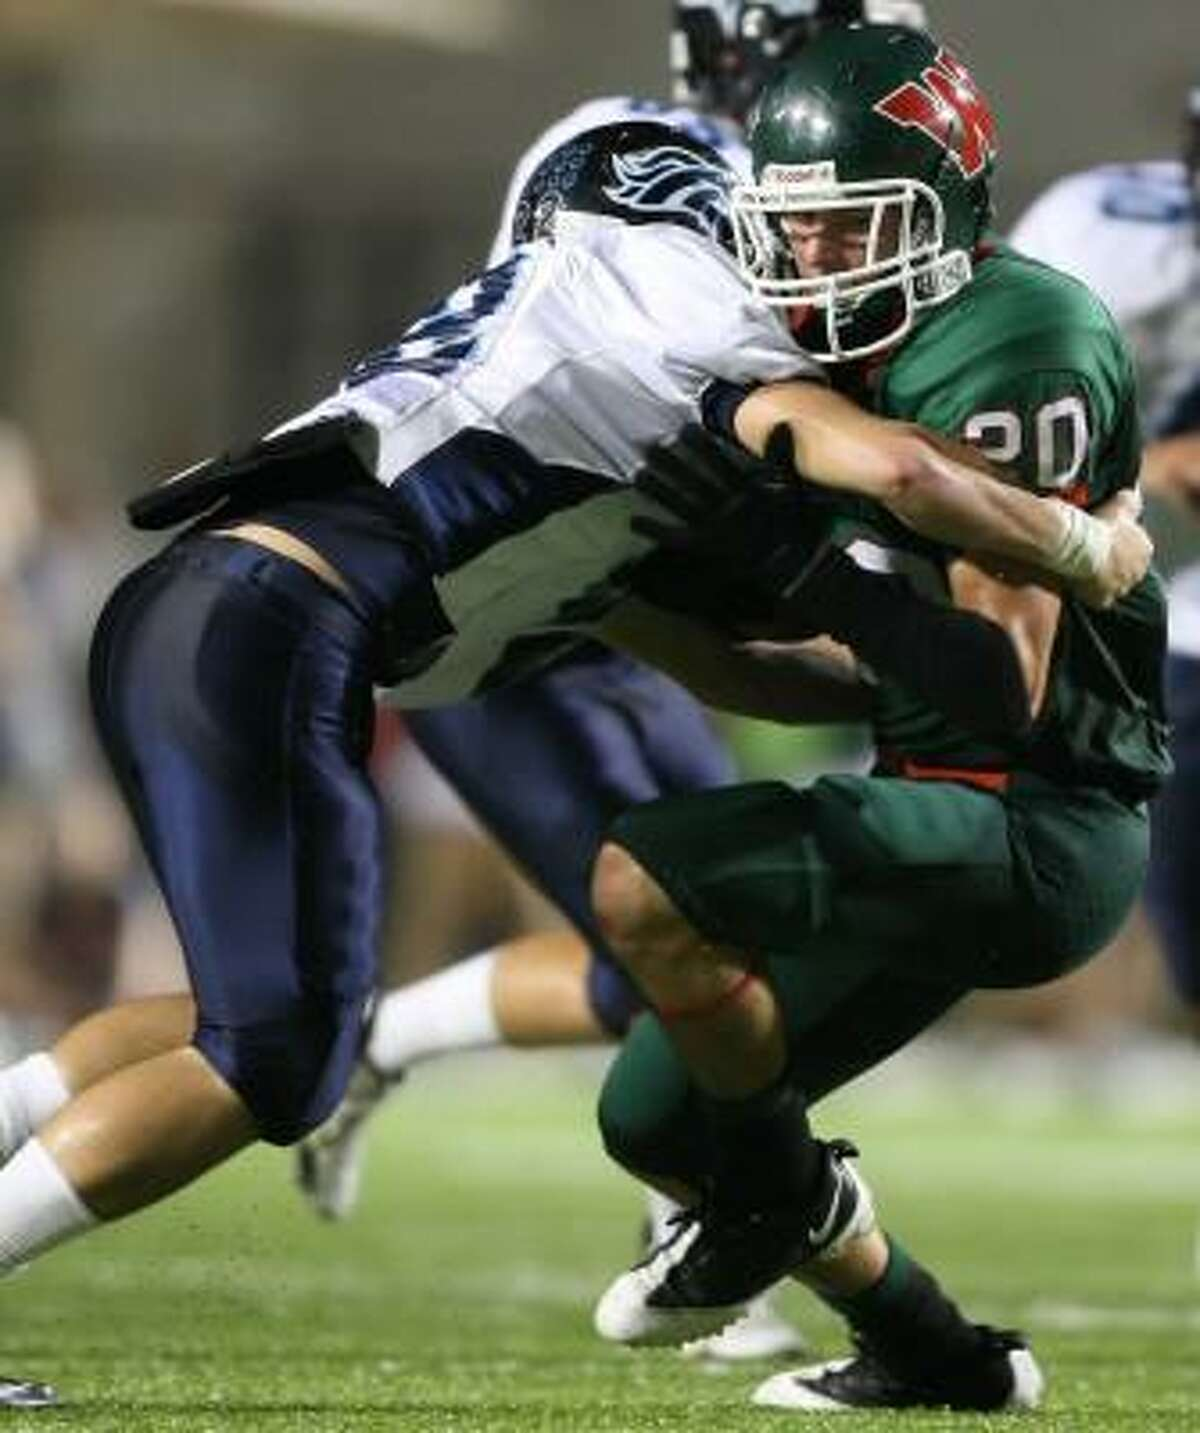 The Woodlands' Jackson LaPlant, right, gets tackled by Kingwood's Brad Tice late in the fourth quarter.